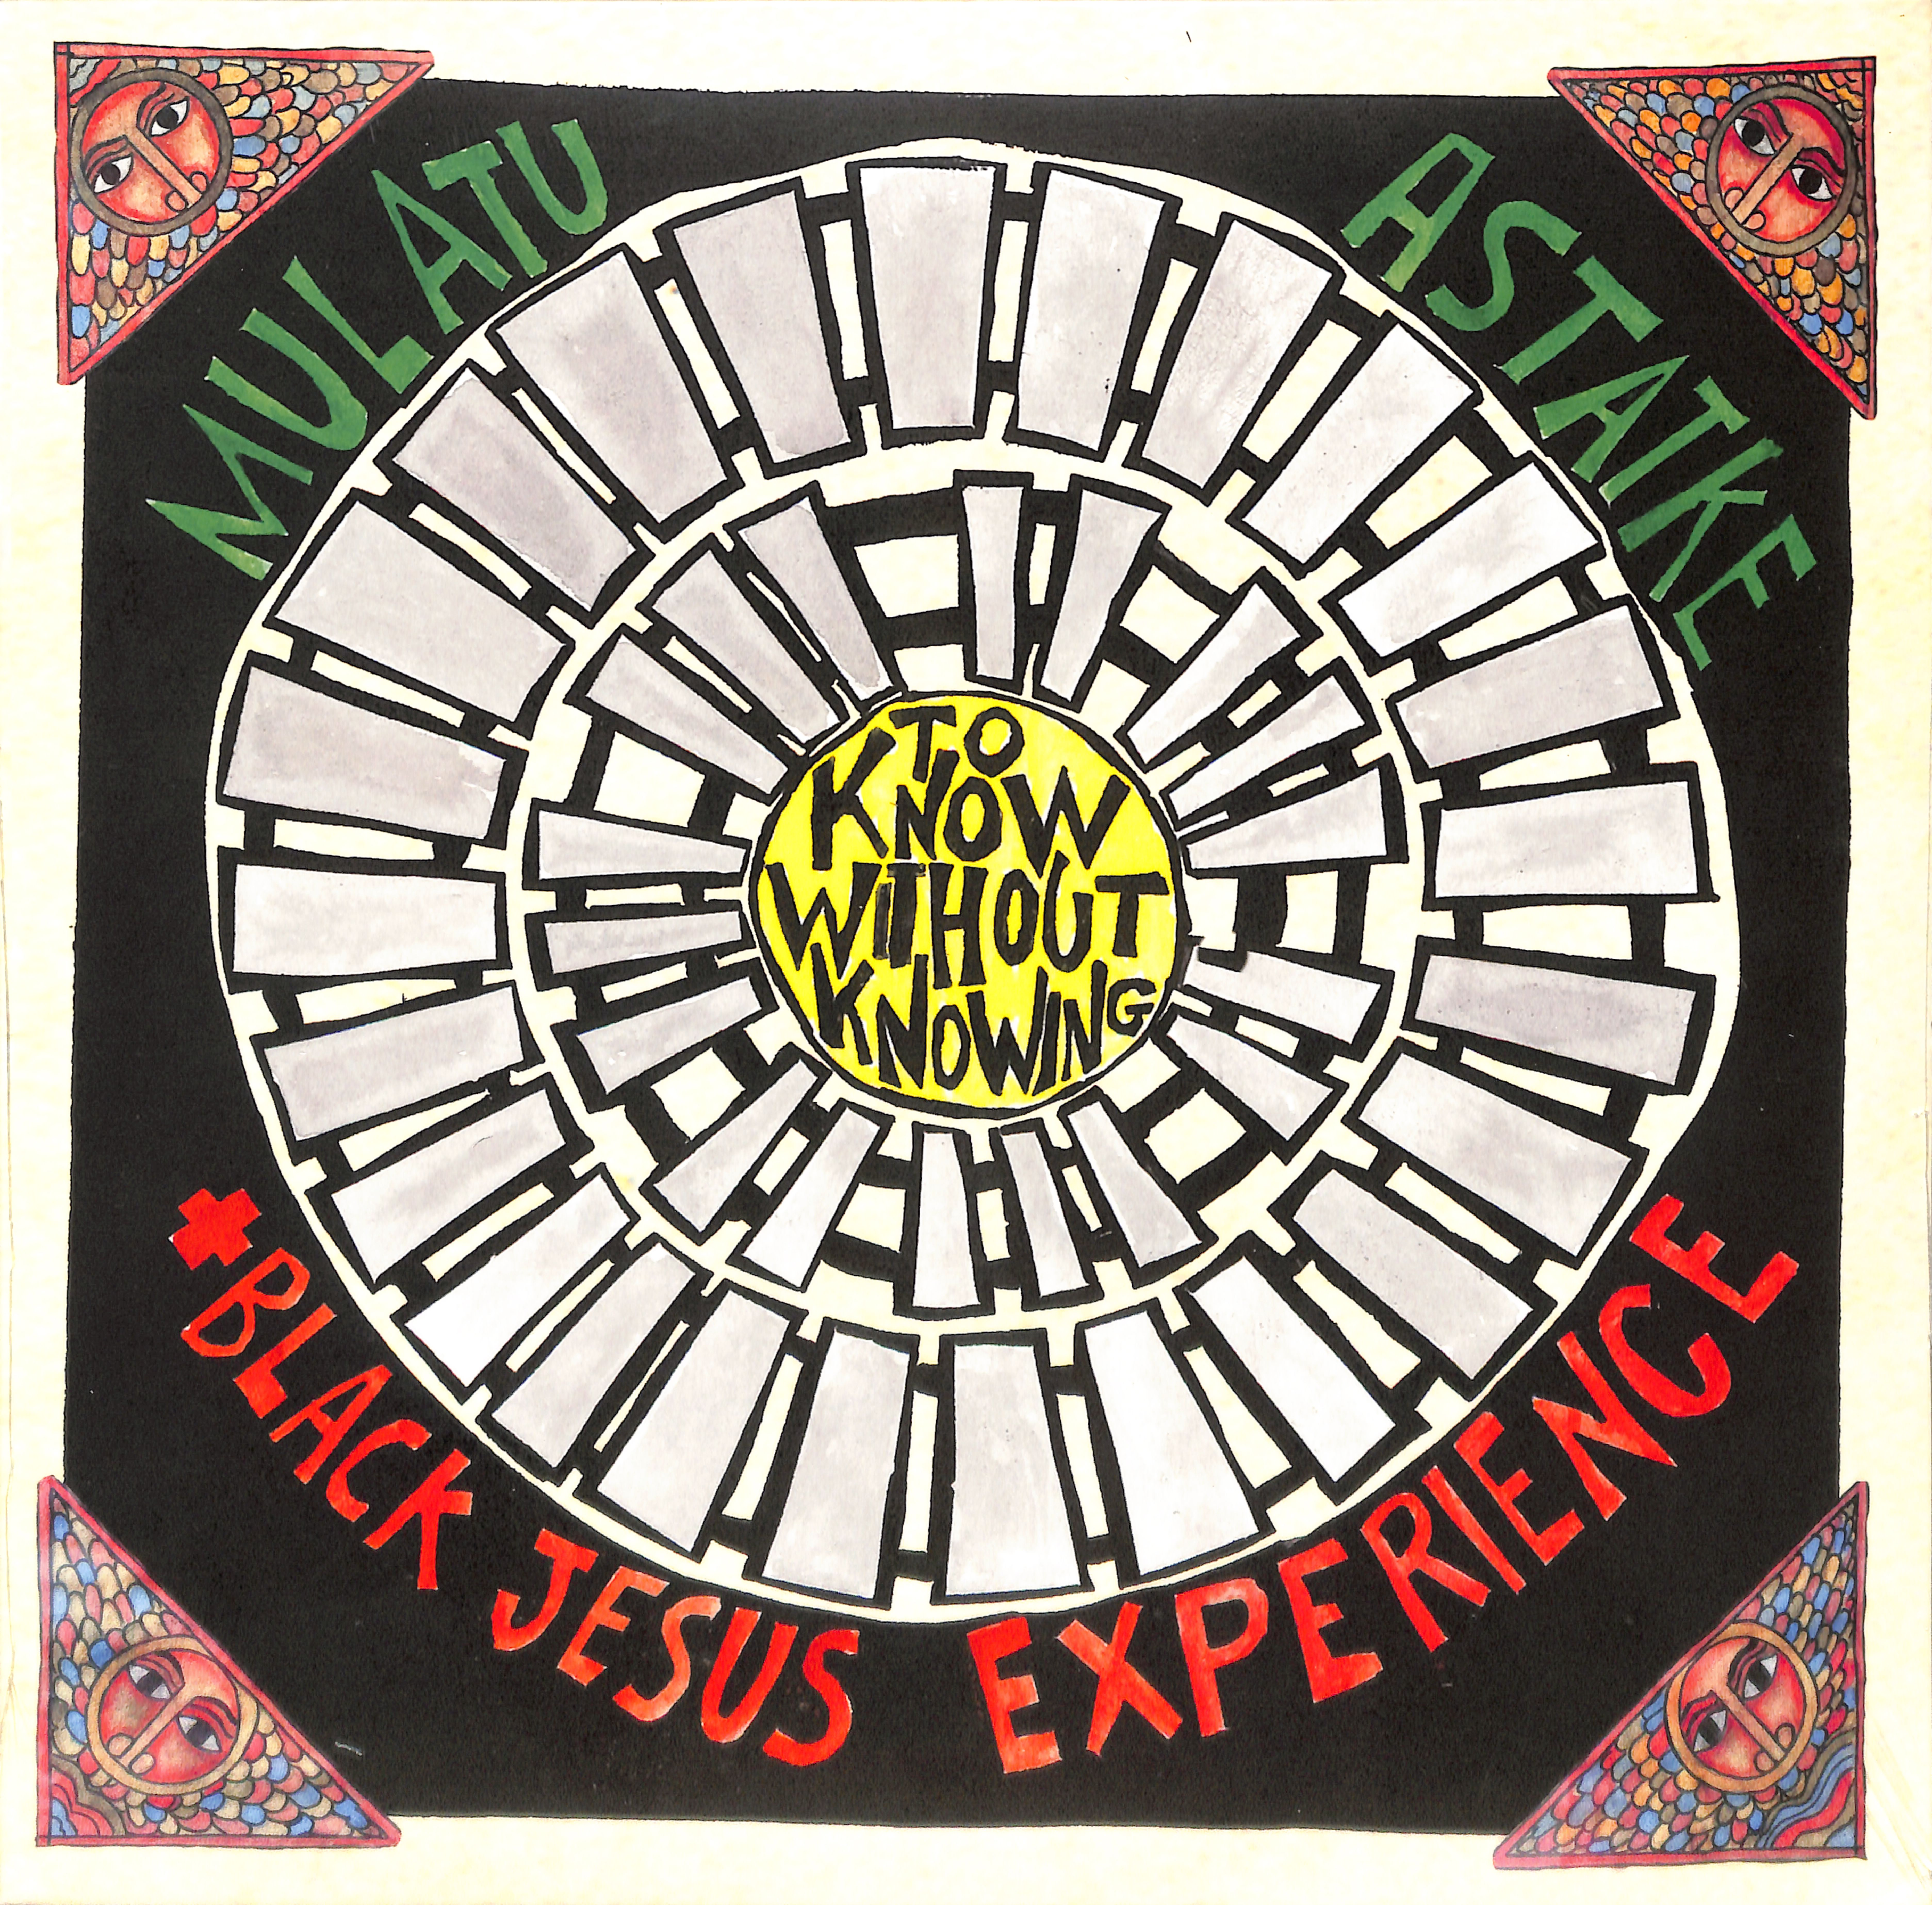 Mulatu Astatke And Black Jesus Experience - TO KNOW WITHOUT KNOWING